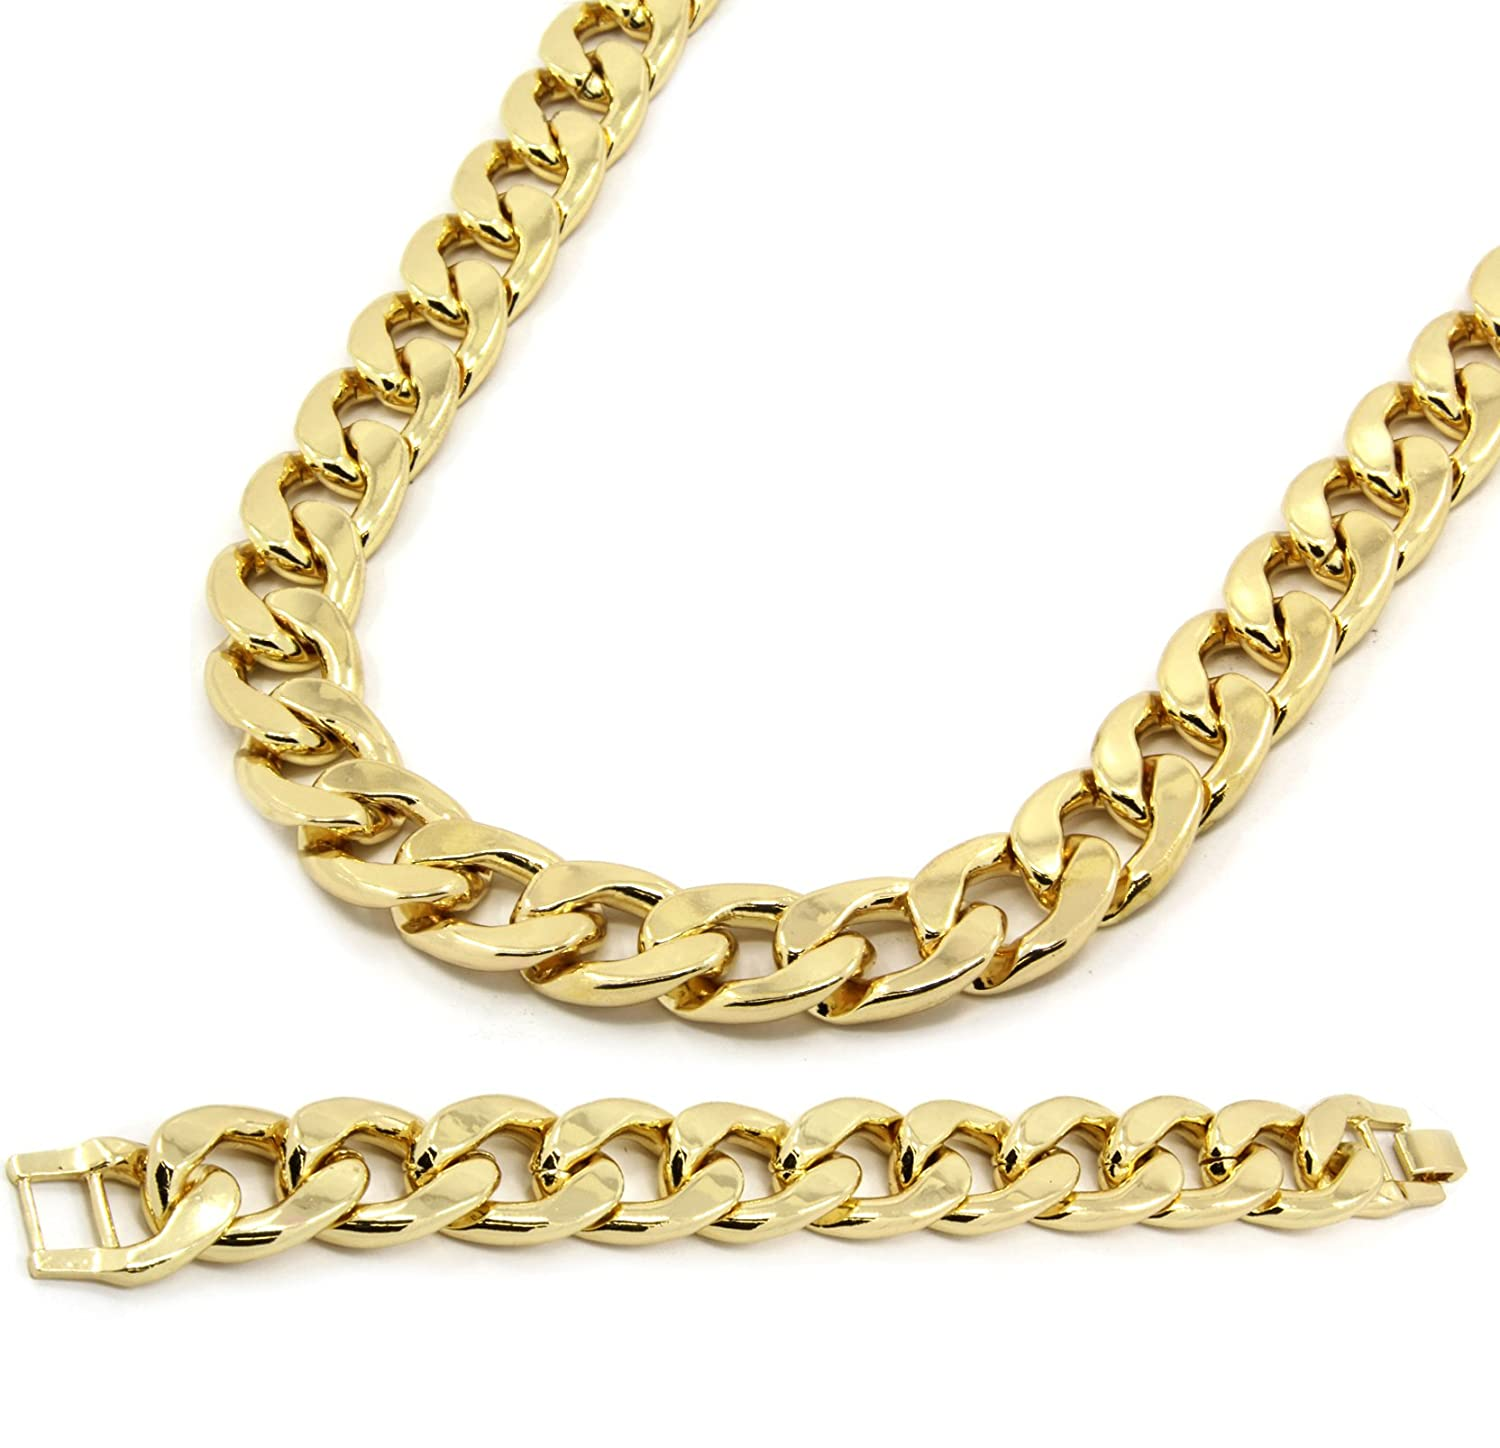 Bundle offer 18k gold plated amp white gold plated necklace 2 ring - Mens Gold Plated Cuban Hip Hop Miami Necklace Chain Bracelet 16mm 30 Inch Amazon Com